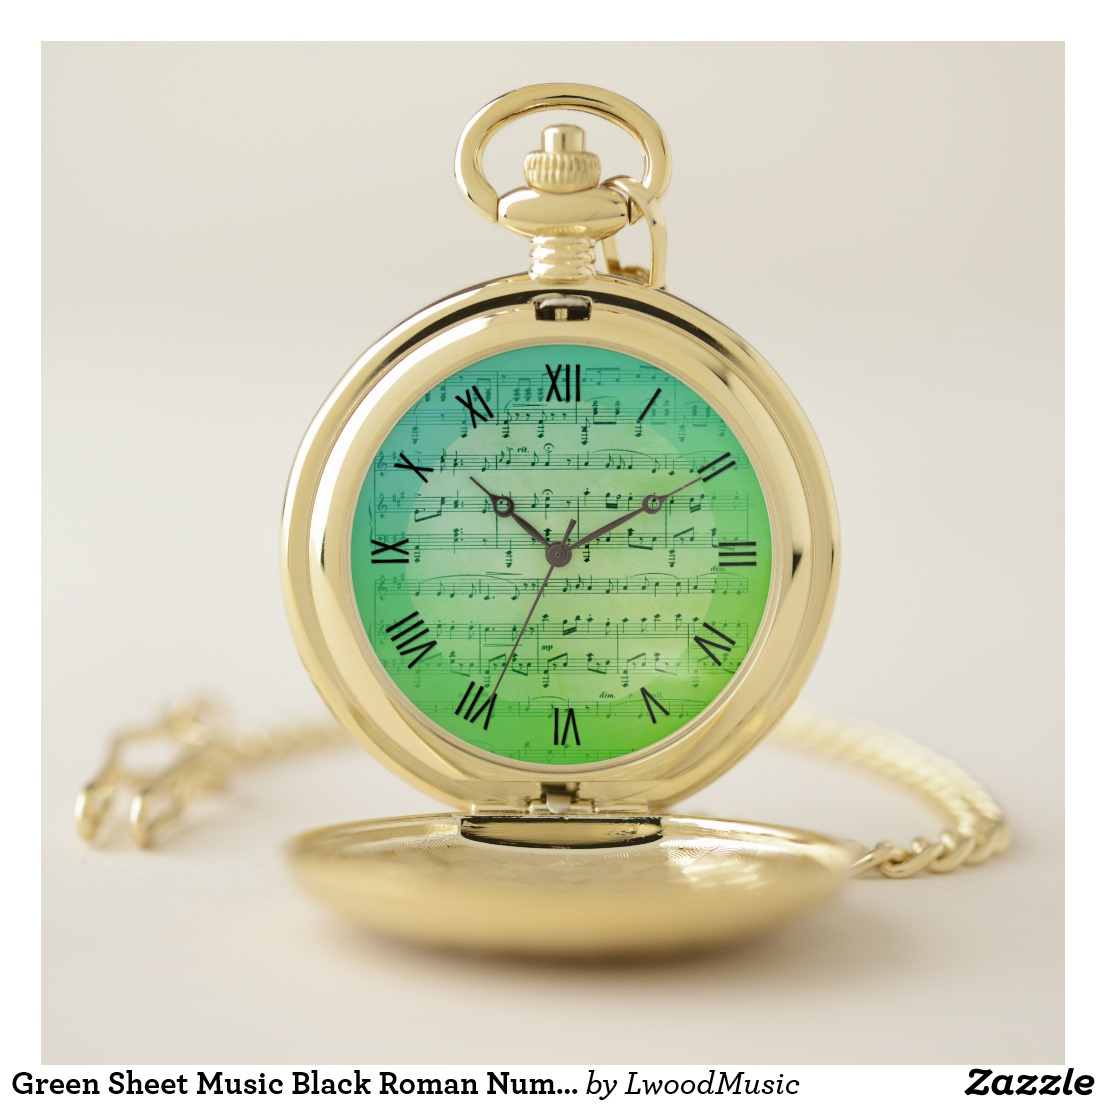 Green Sheet Music Black Roman Numerals Pocket Watch